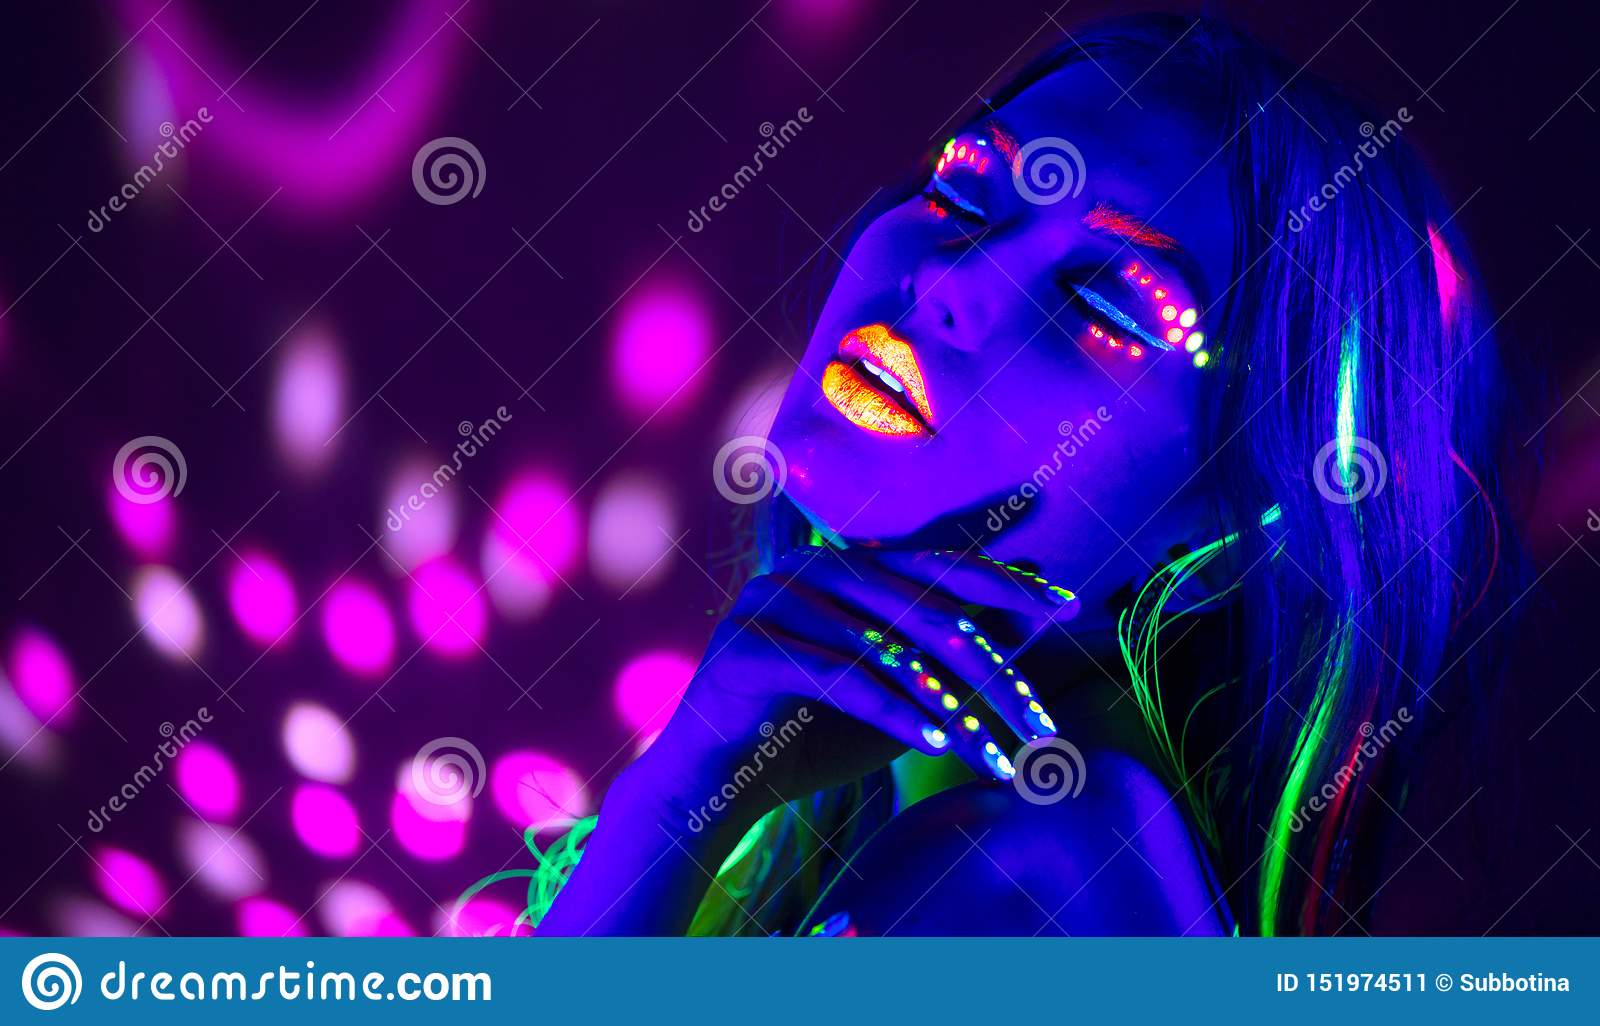 Fashion disco woman. Dancing model in neon light, portrait of beauty girl with fluorescent makeup